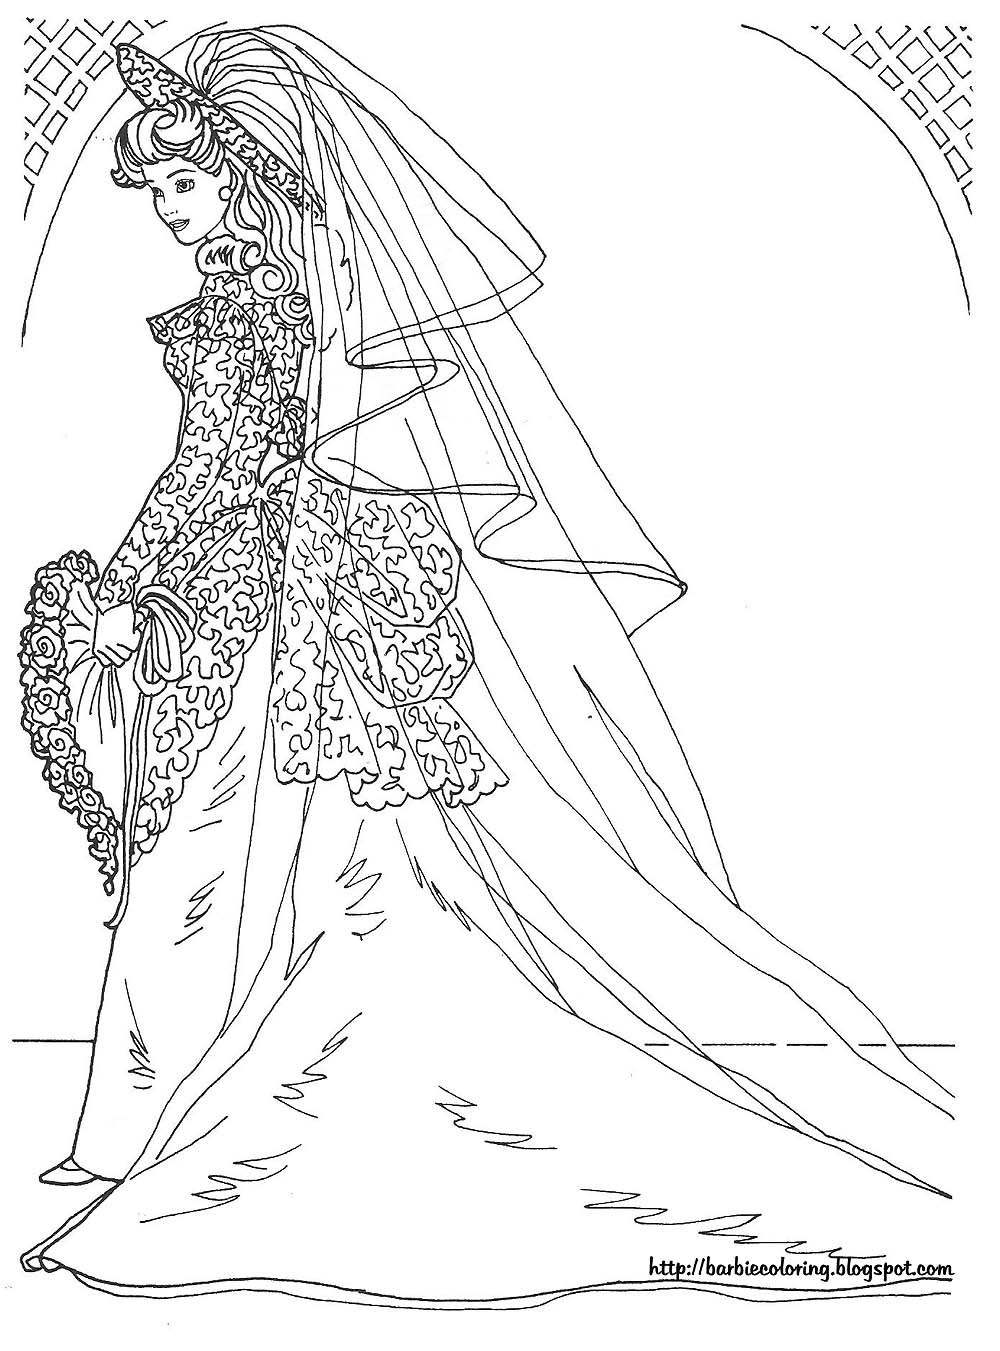 barbie coloring pages full size - photo#31